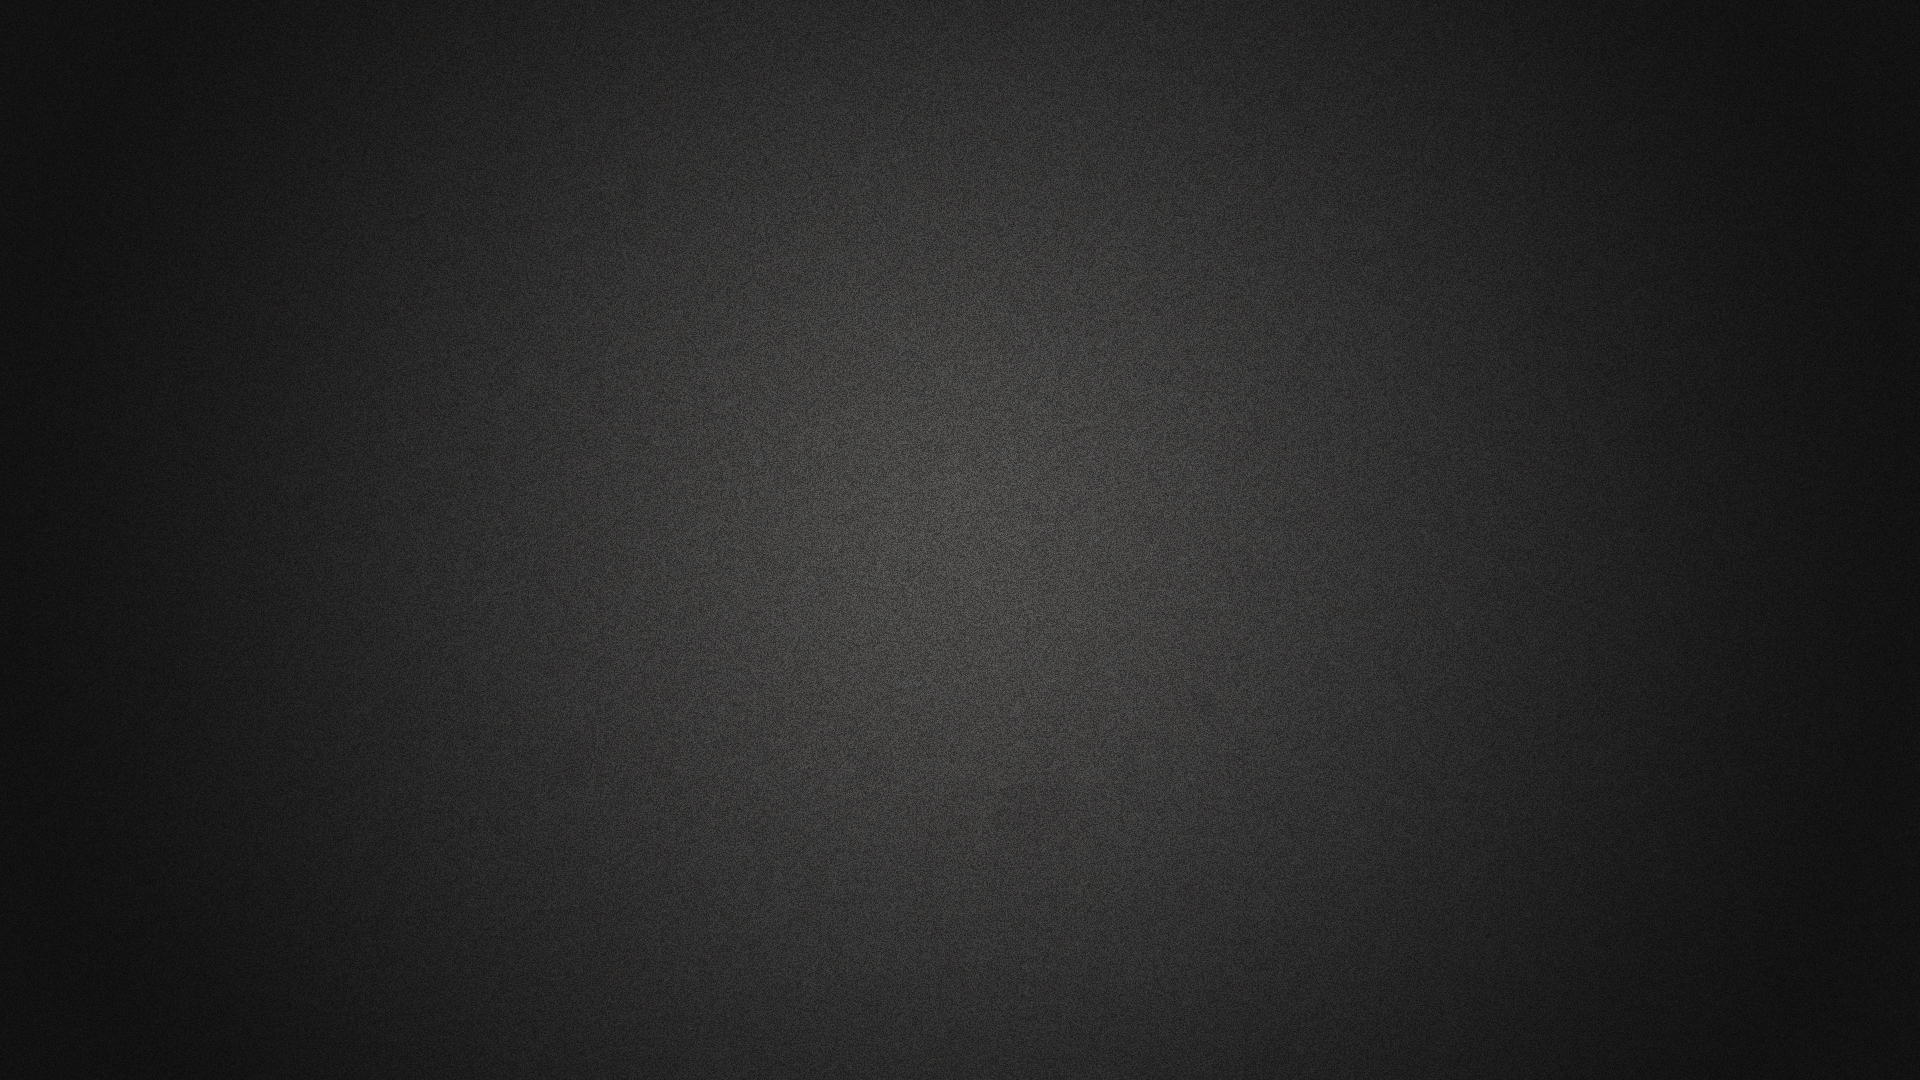 Matte Black Wallpaper 1920x1080 75976